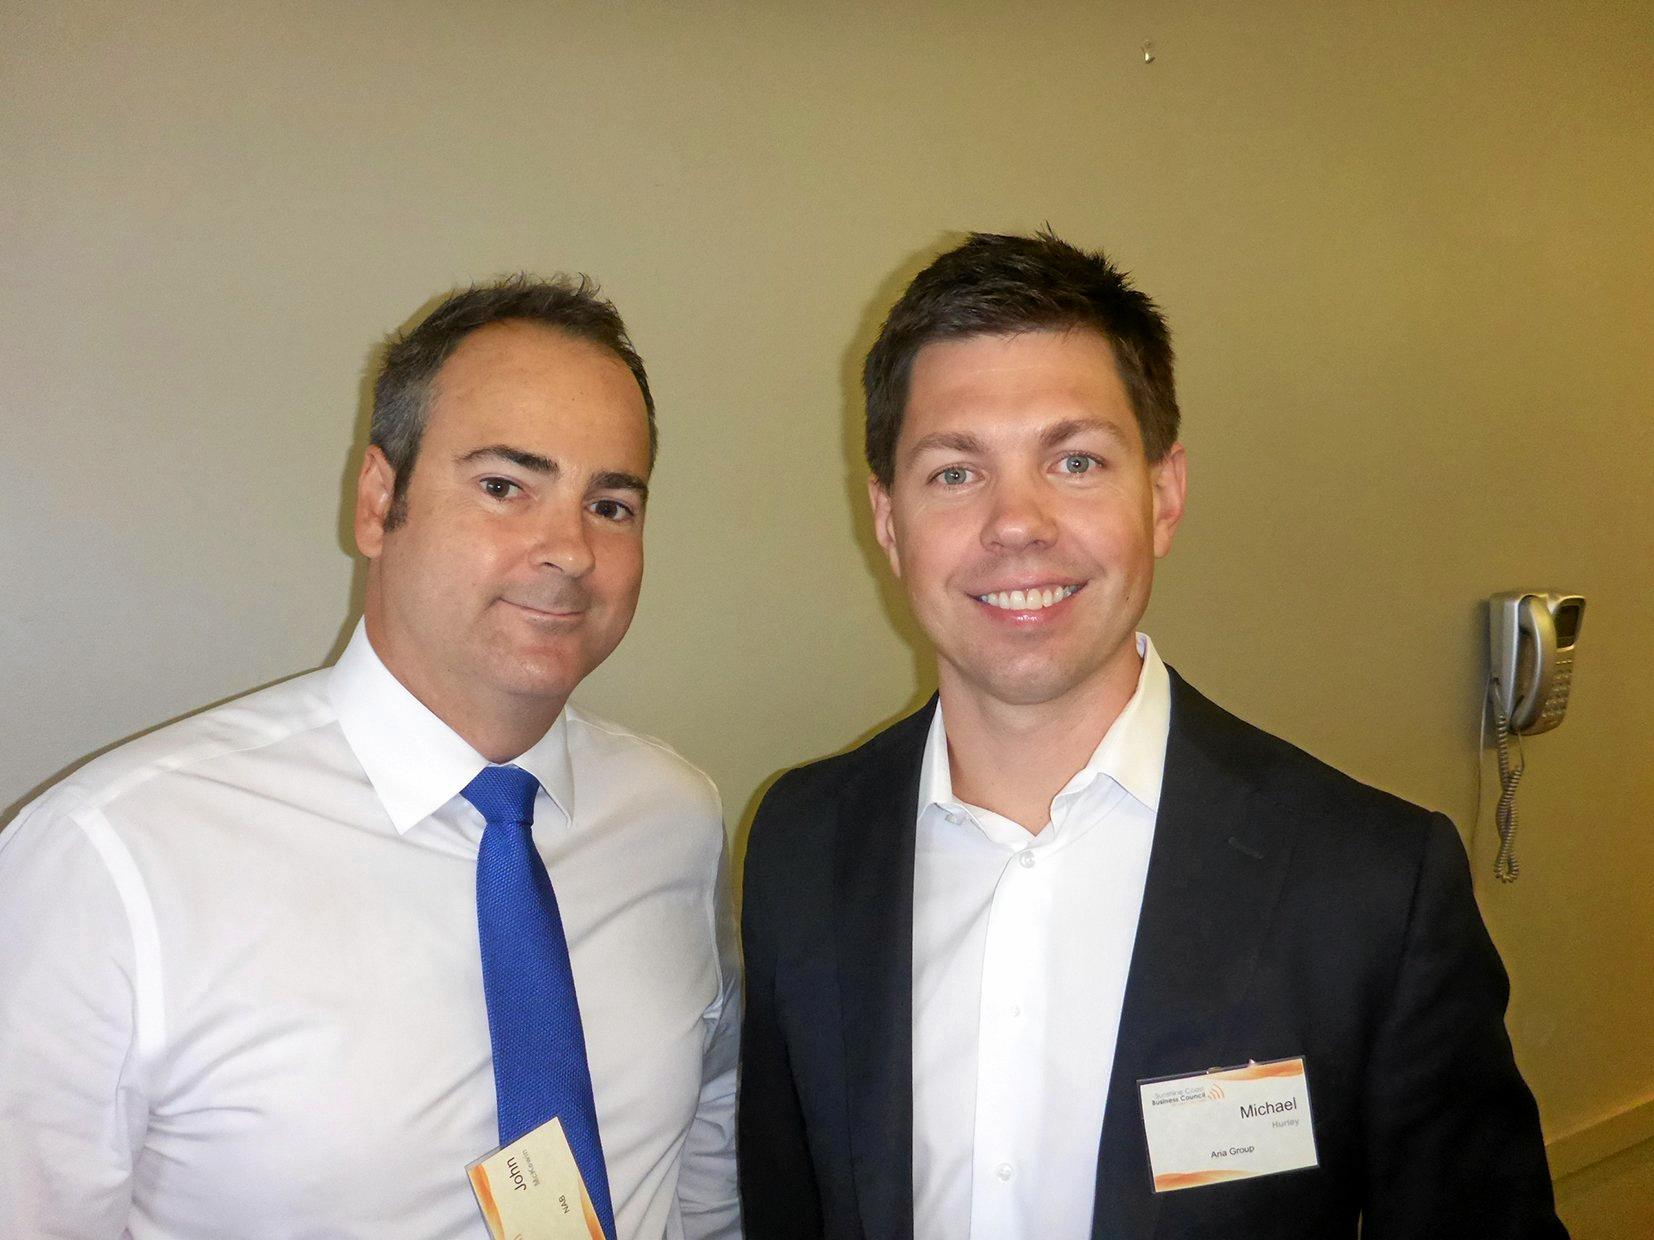 John McKewin and Michael Hurley catch up at the Sunshine Coast Business Council strategic discussion.